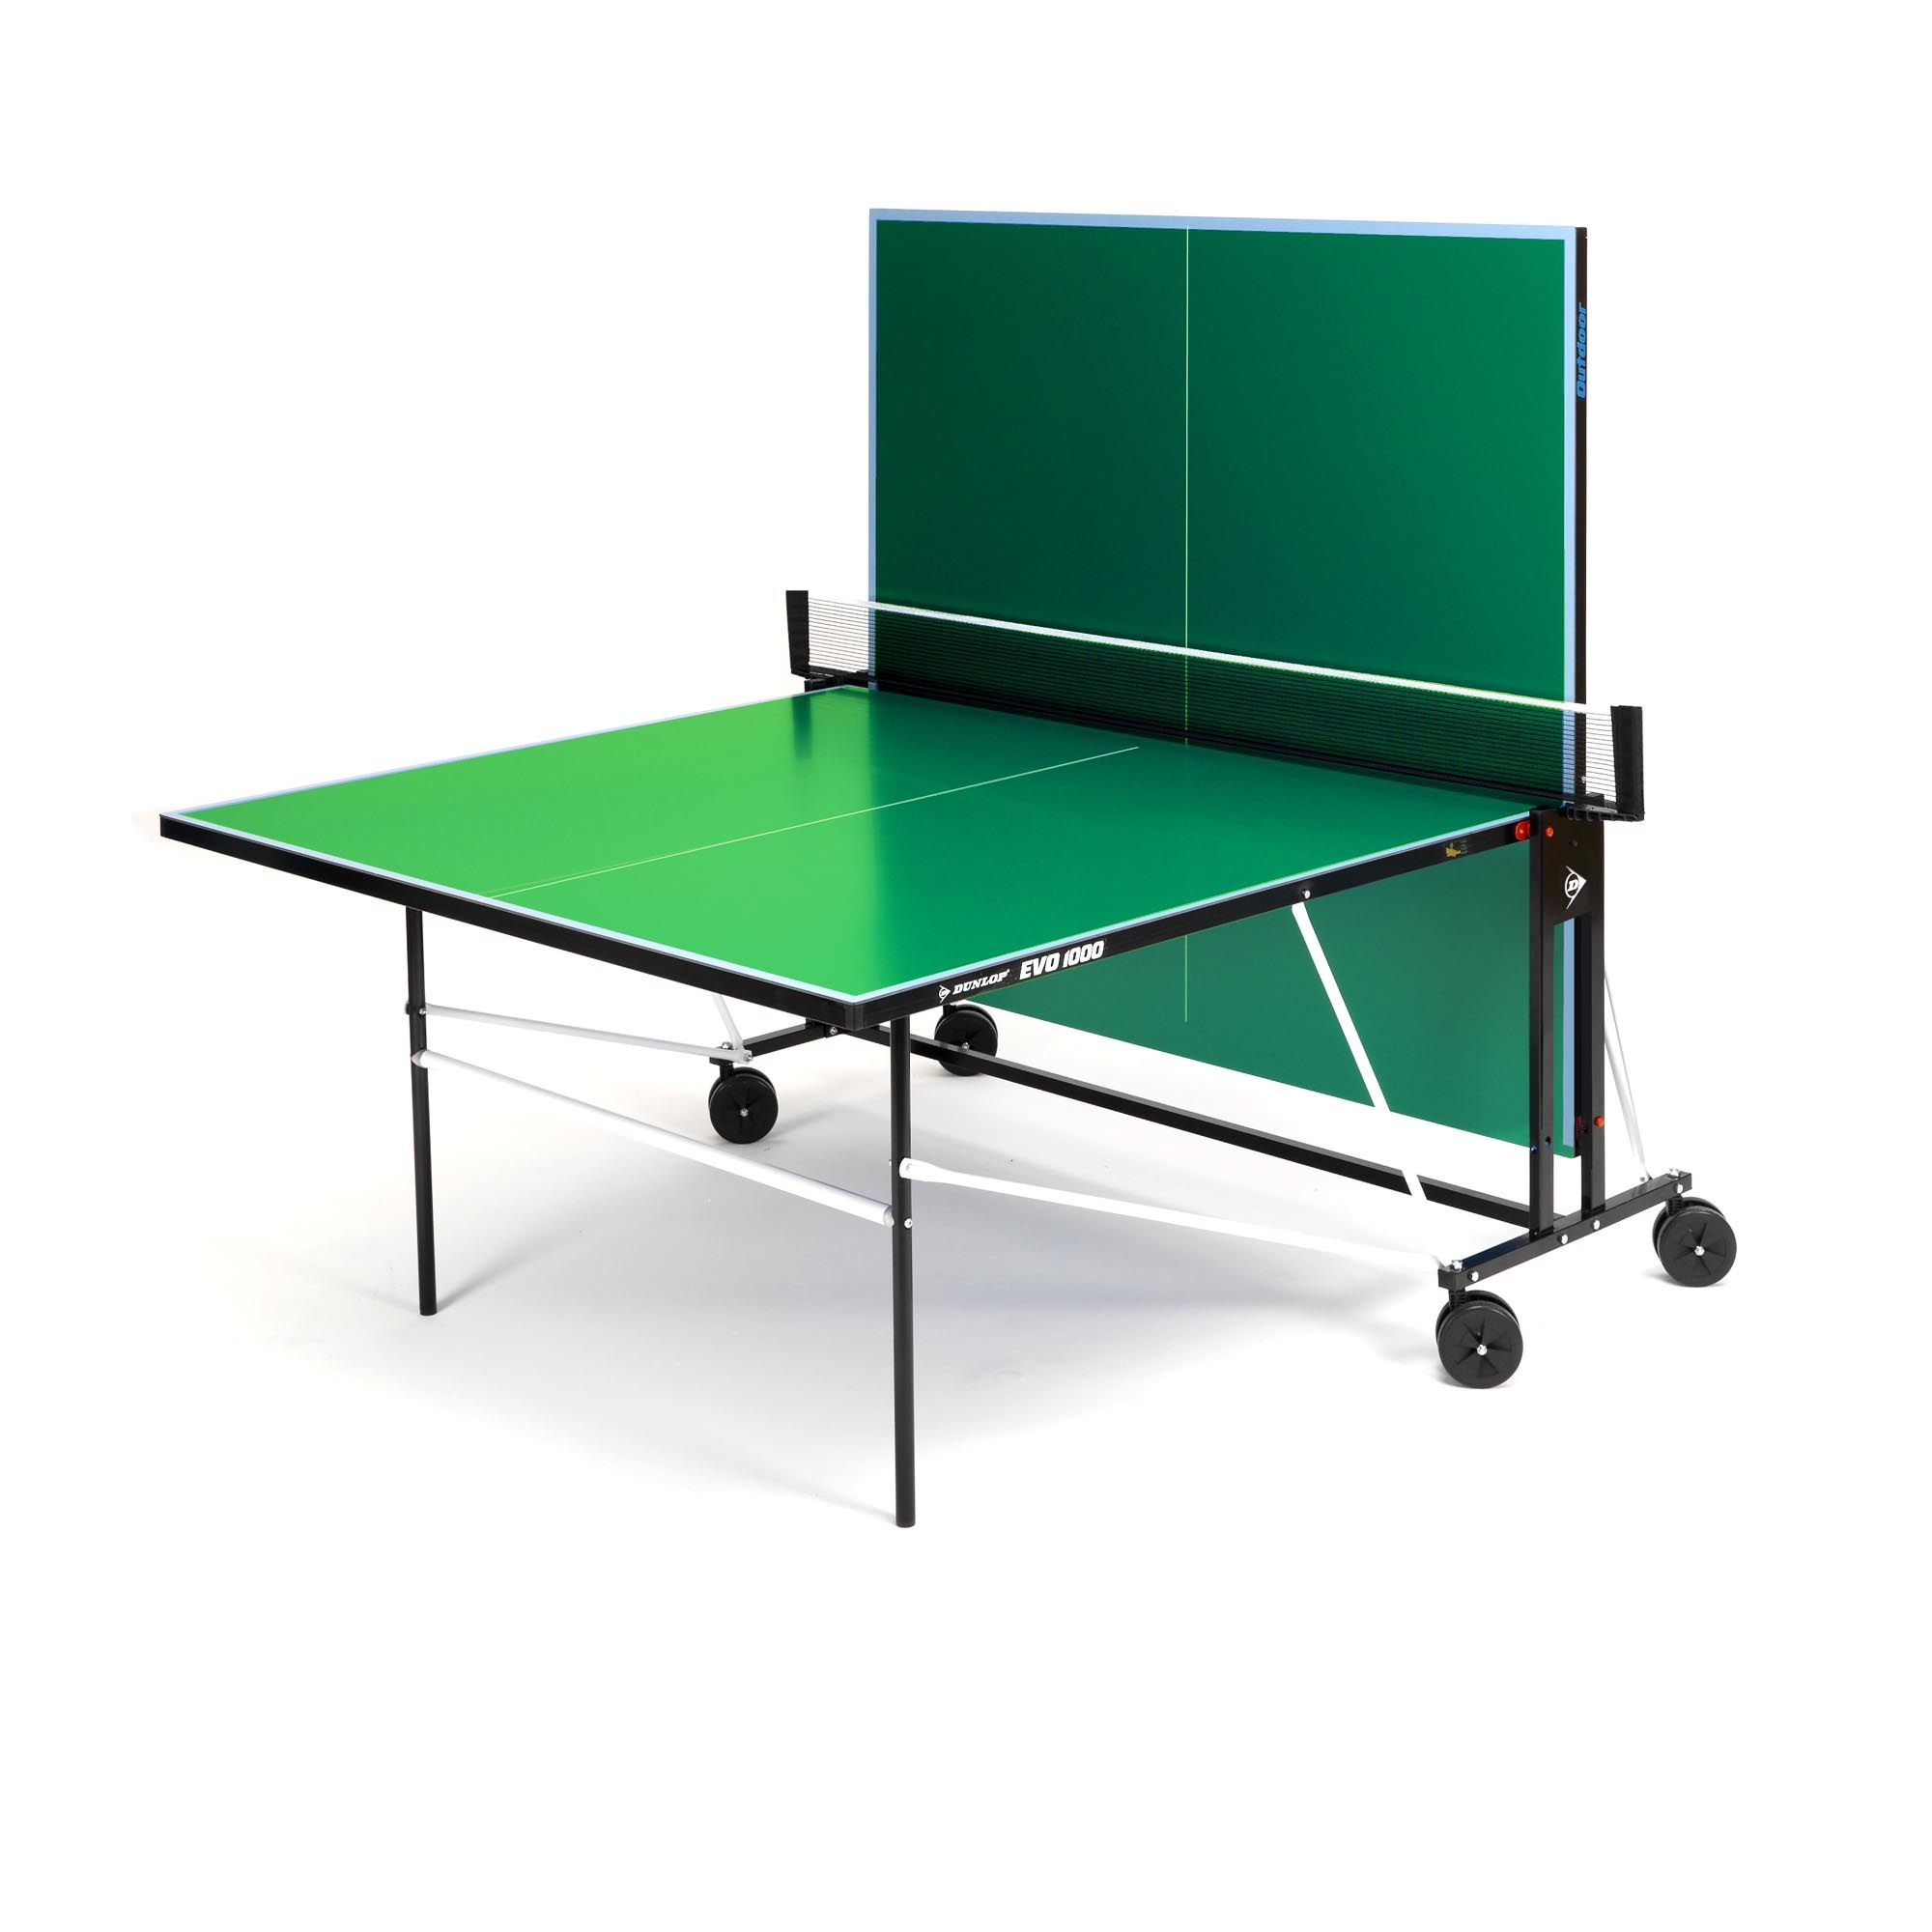 Dunlop evo 1000 outdoor table tennis table for Table tennis